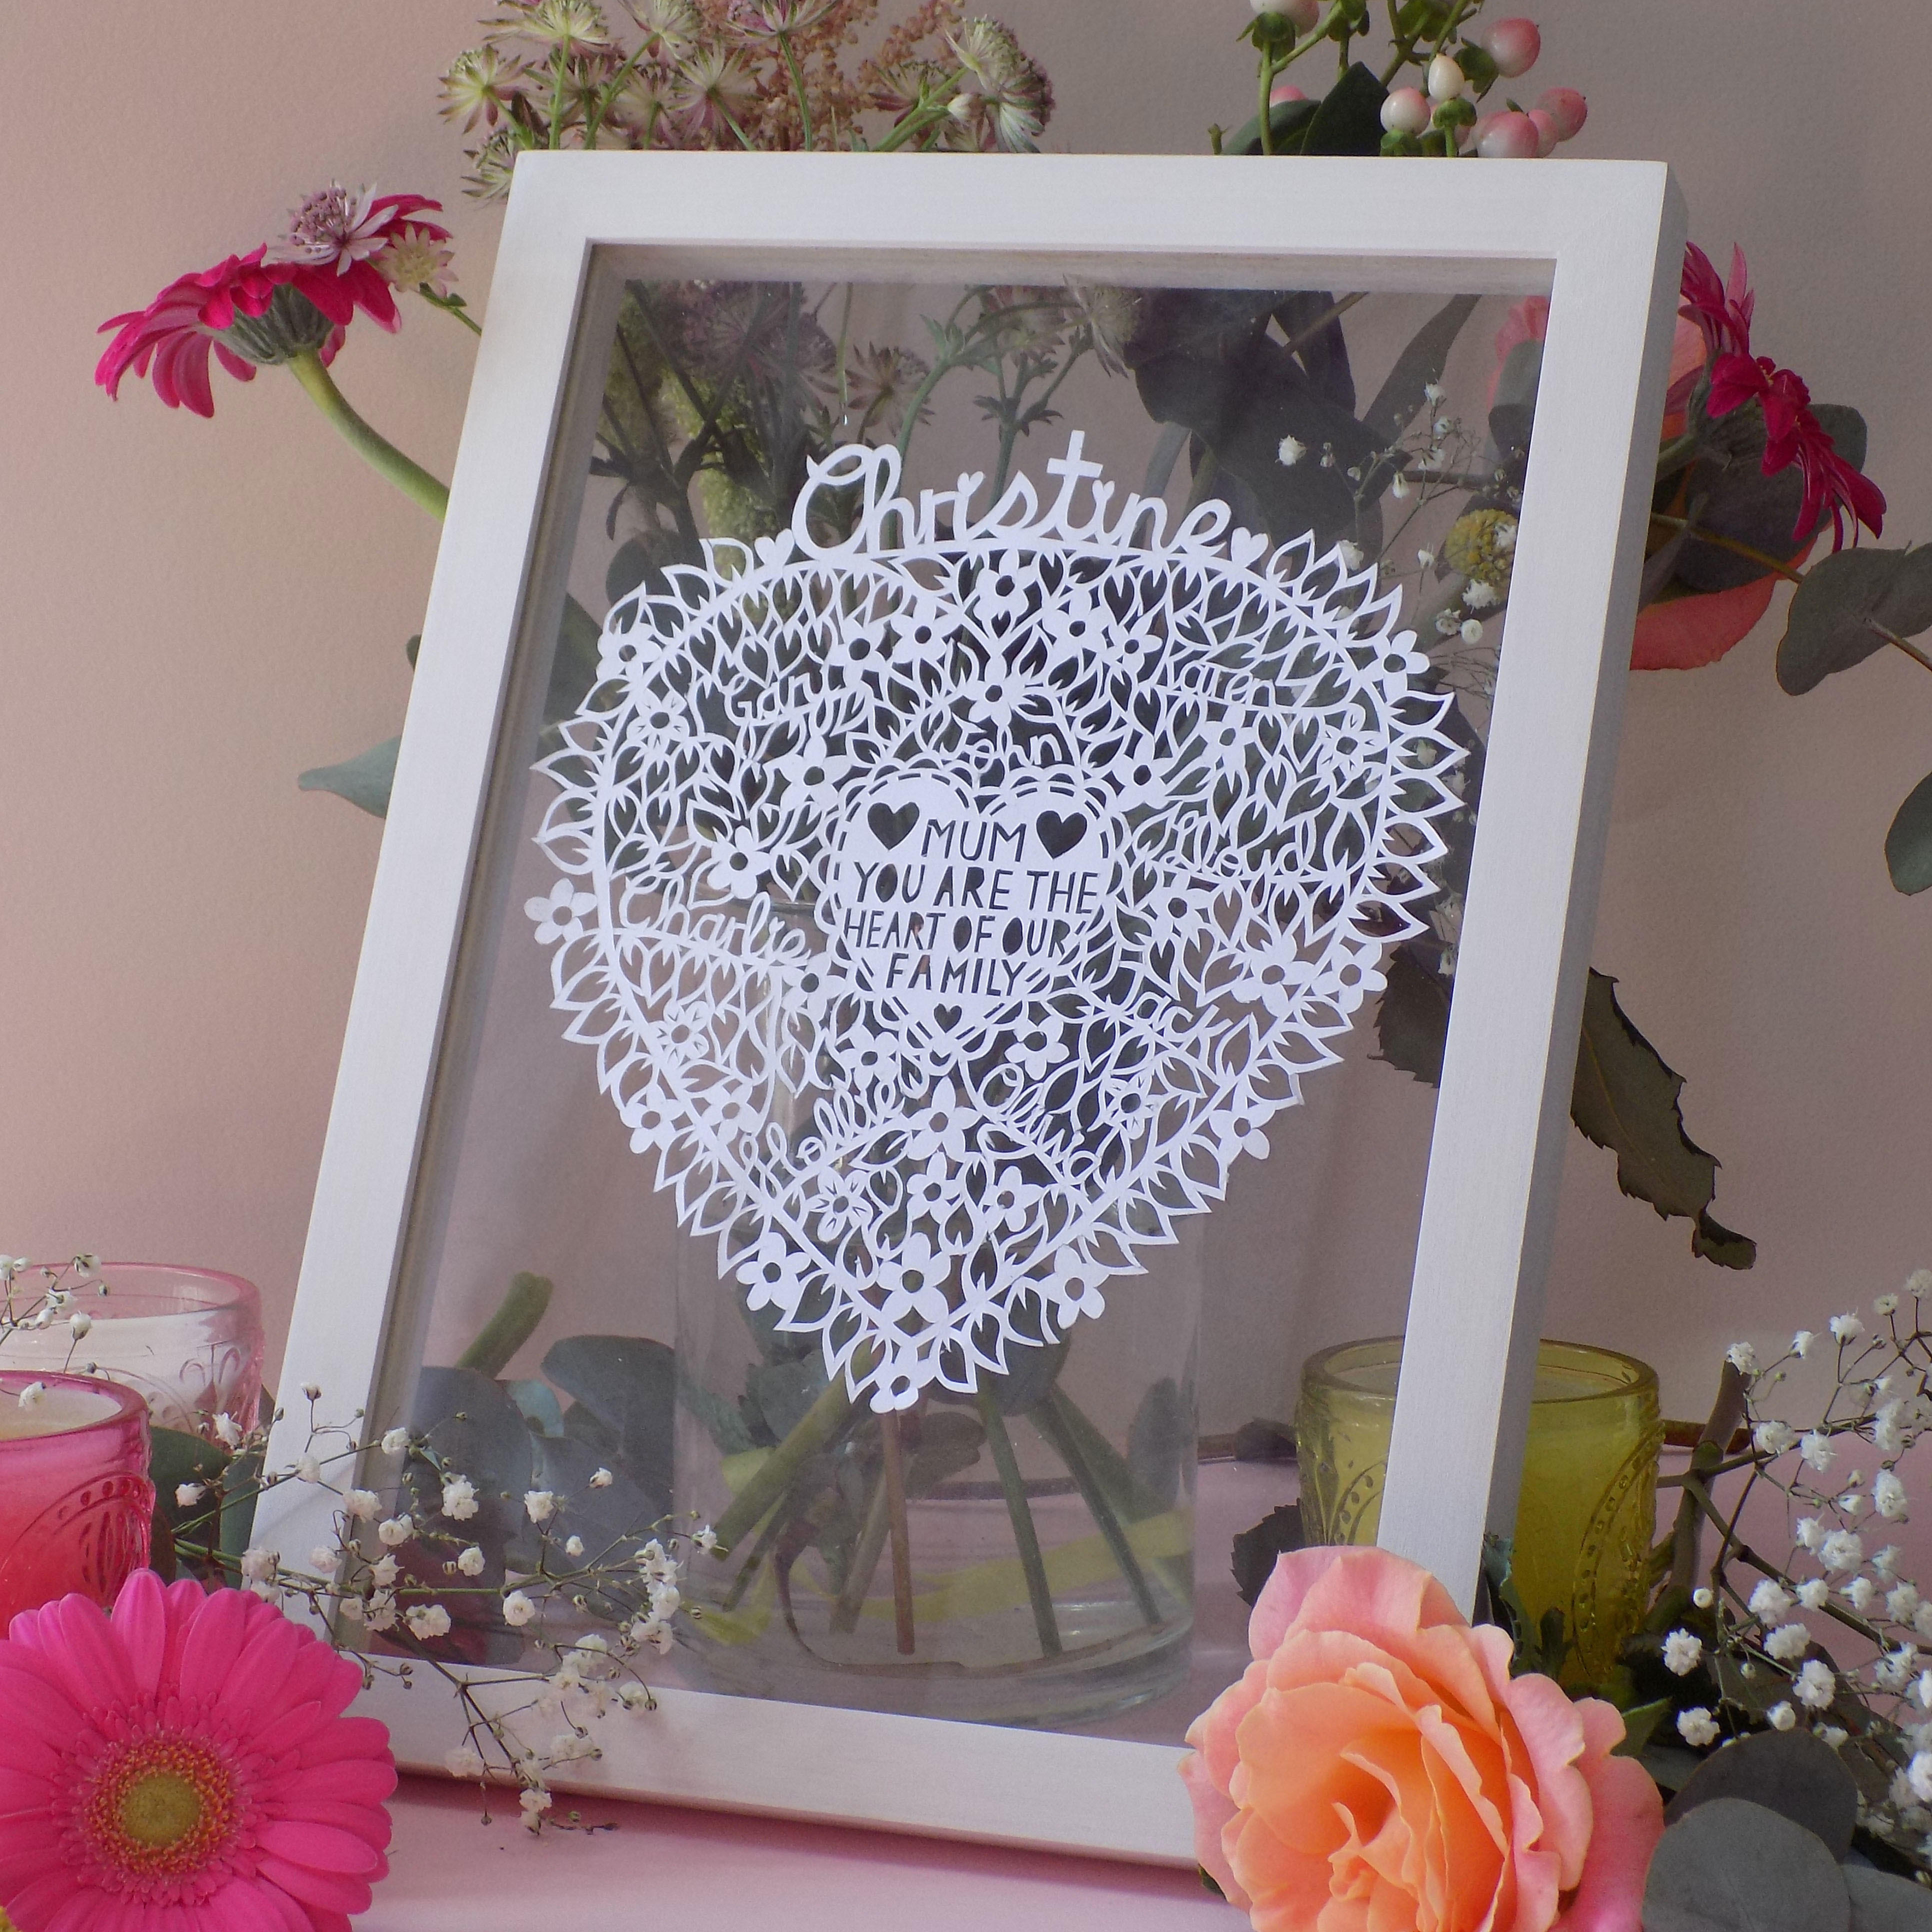 A hand drawn hand cut paper cut love heart filled with flowers and the names of all the family, personalised for mums.